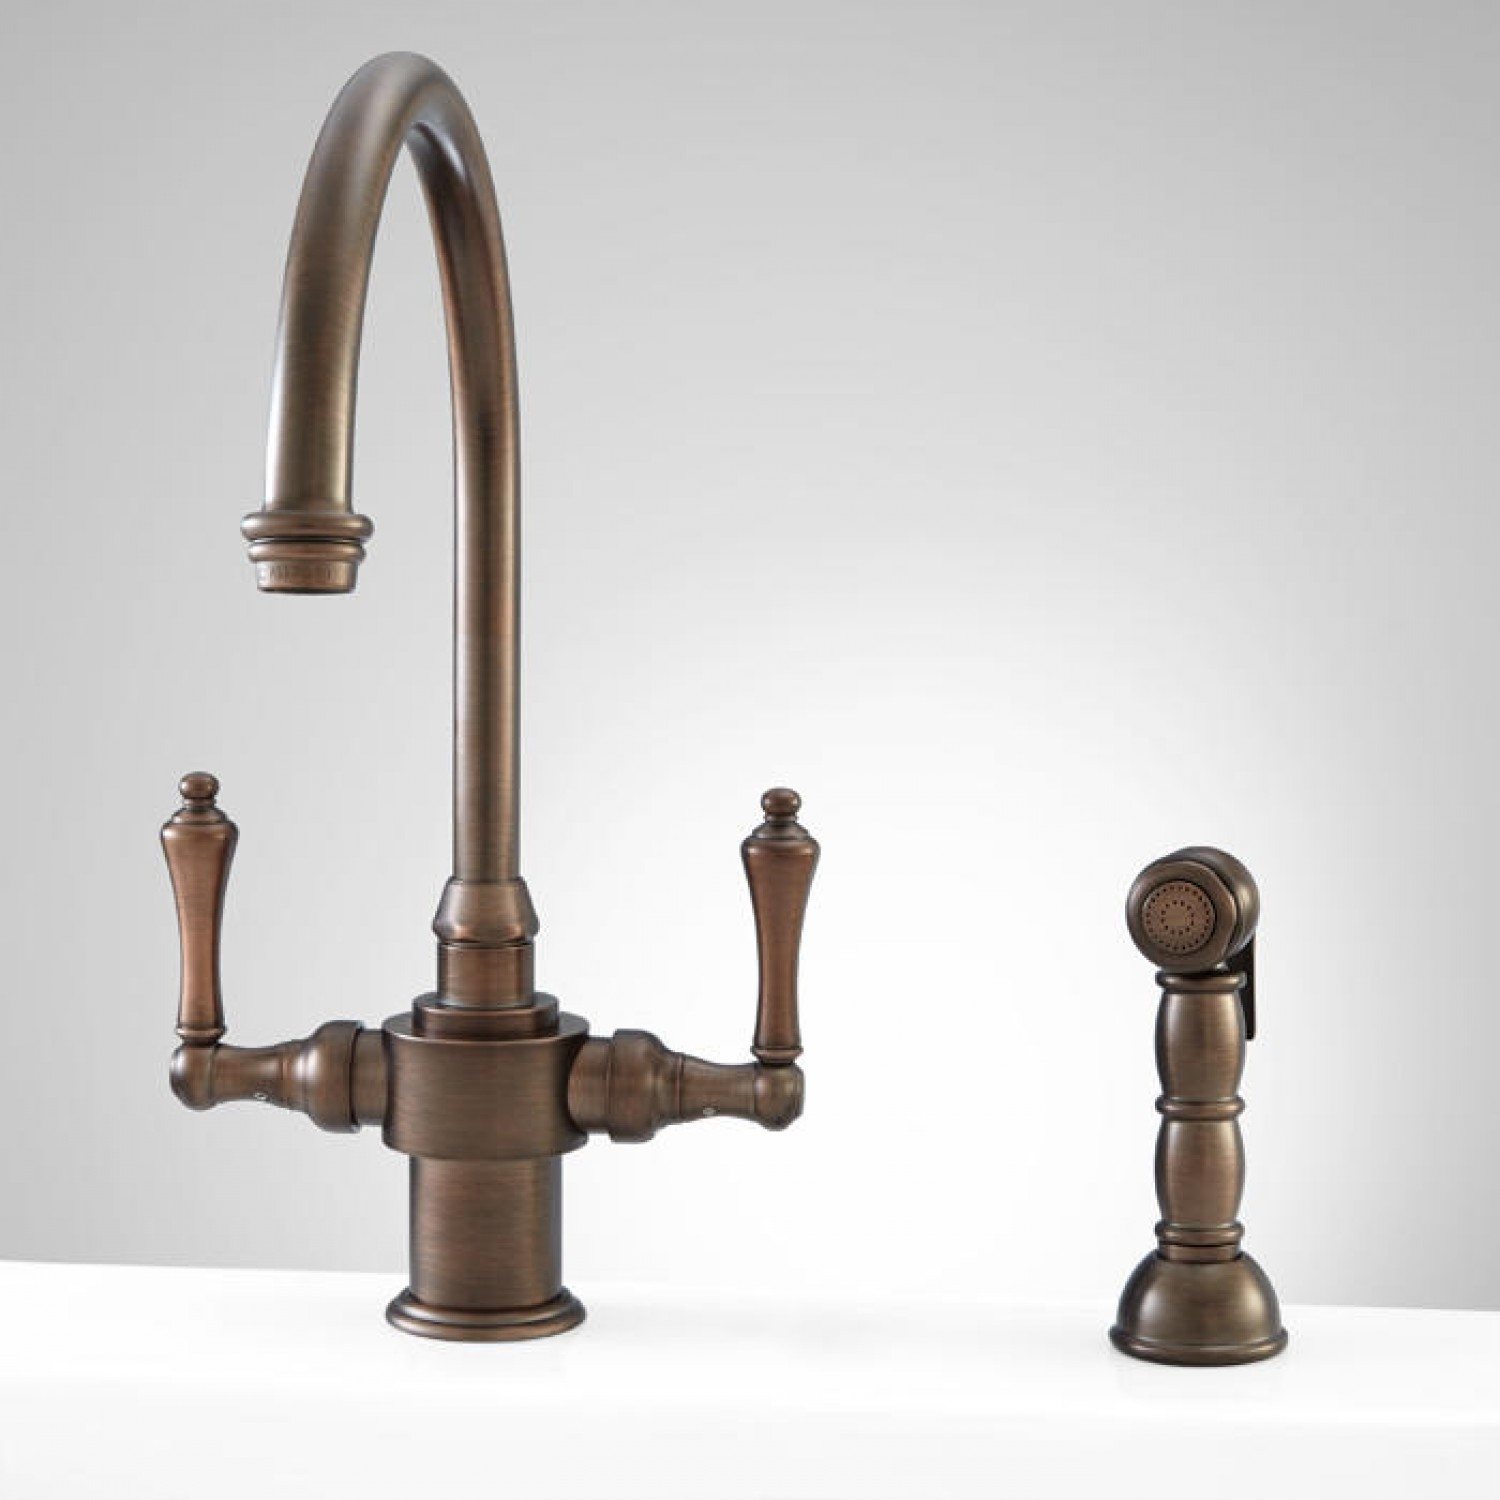 bar sink faucets single hole bar sink faucets single hole bar faucets bar sink faucets signature hardware 1500 x 1500